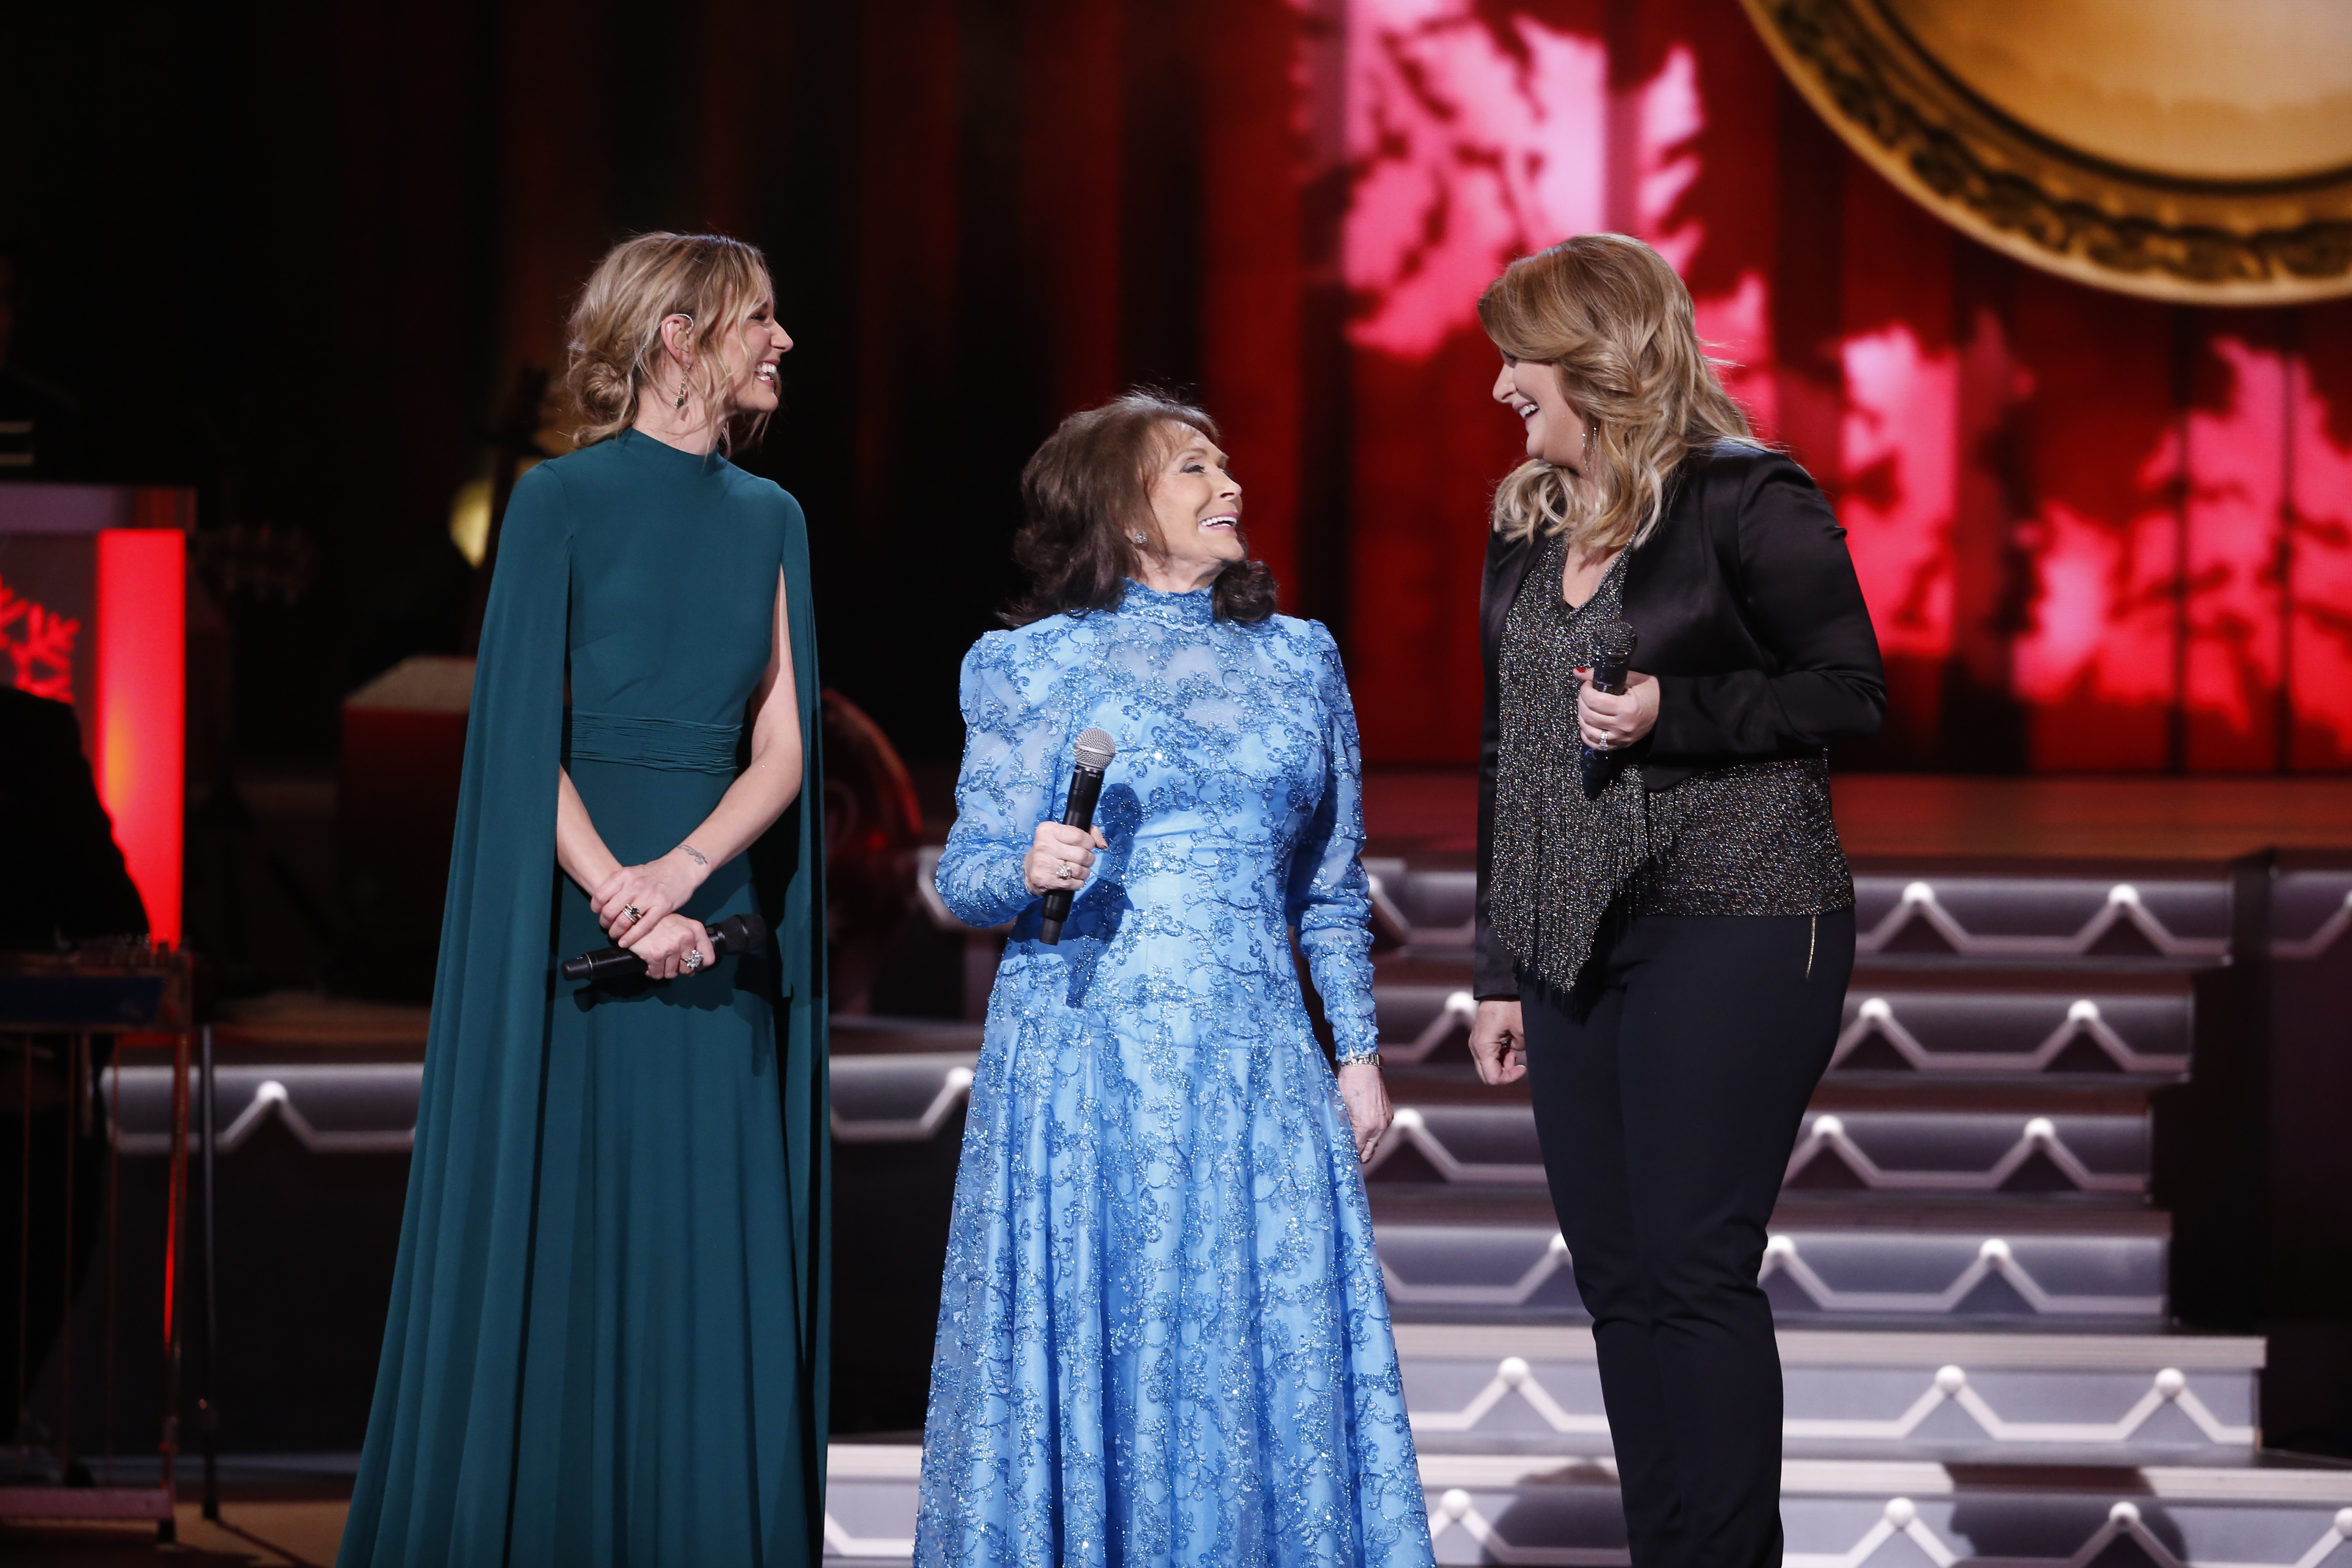 Jennifer Nettles, Trisha Yearwood and Loretta Lynn Join Forces For ...